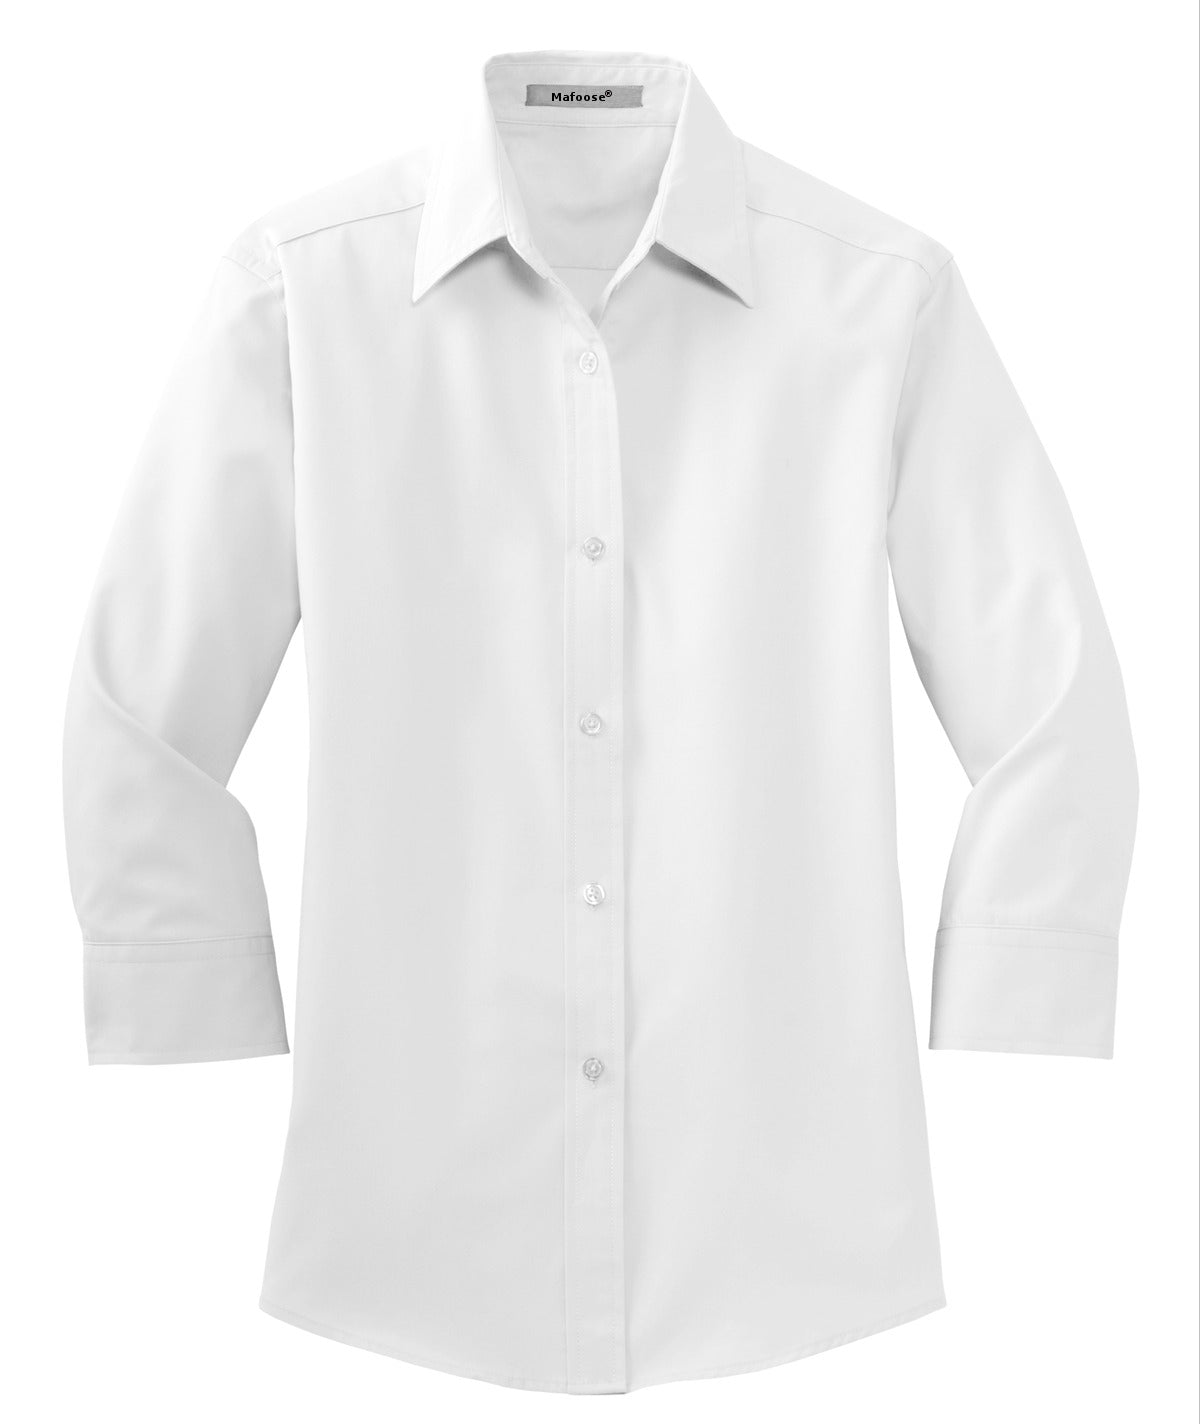 Mafoose Women's 3/4-Sleeve Traditional Easy Care Shirt White-Front